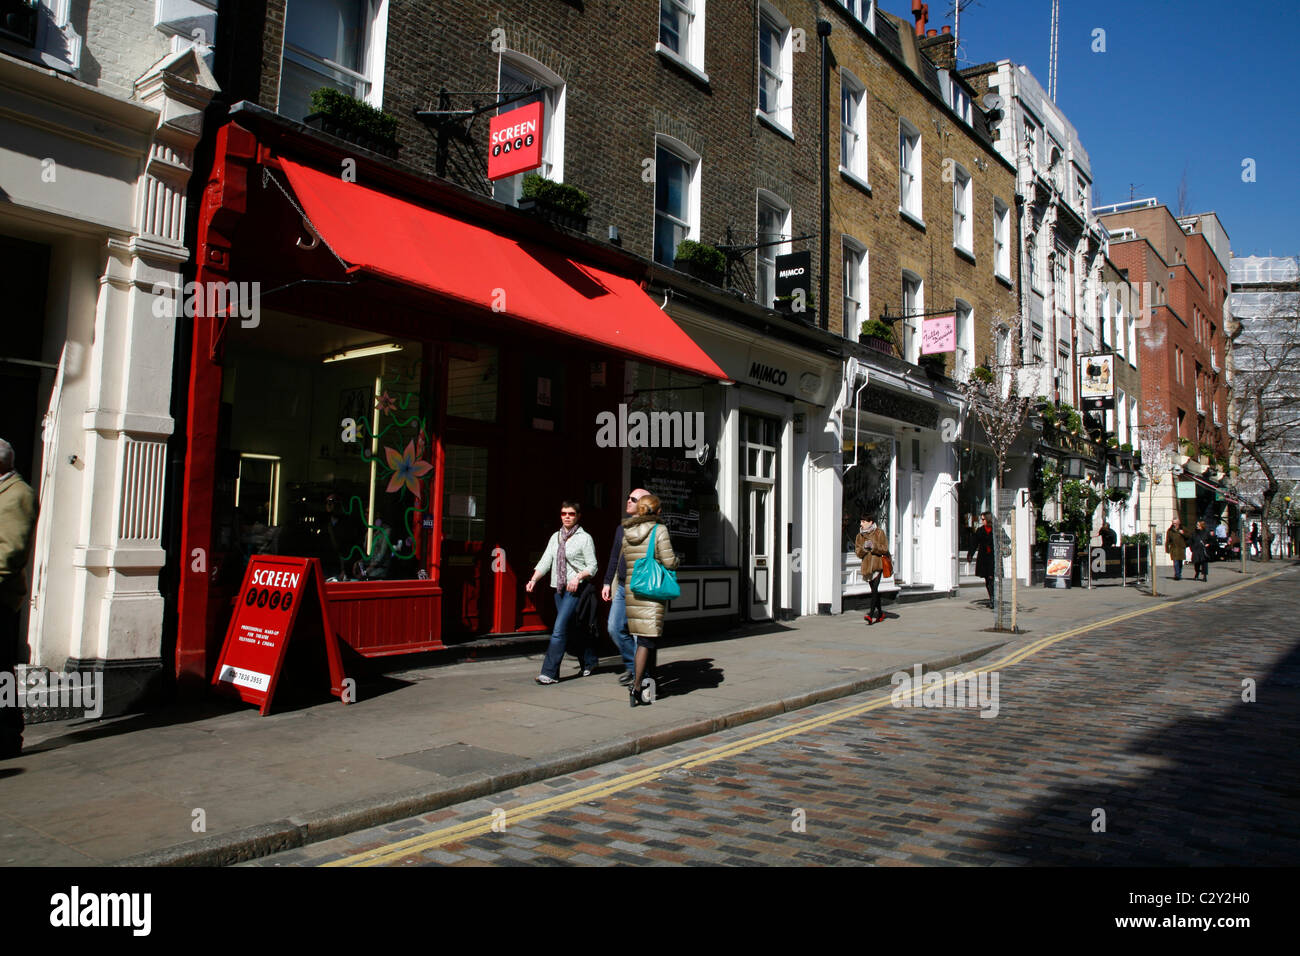 Monmouth Street in Seven Dials, Covent Garden, London, UK - Stock Image